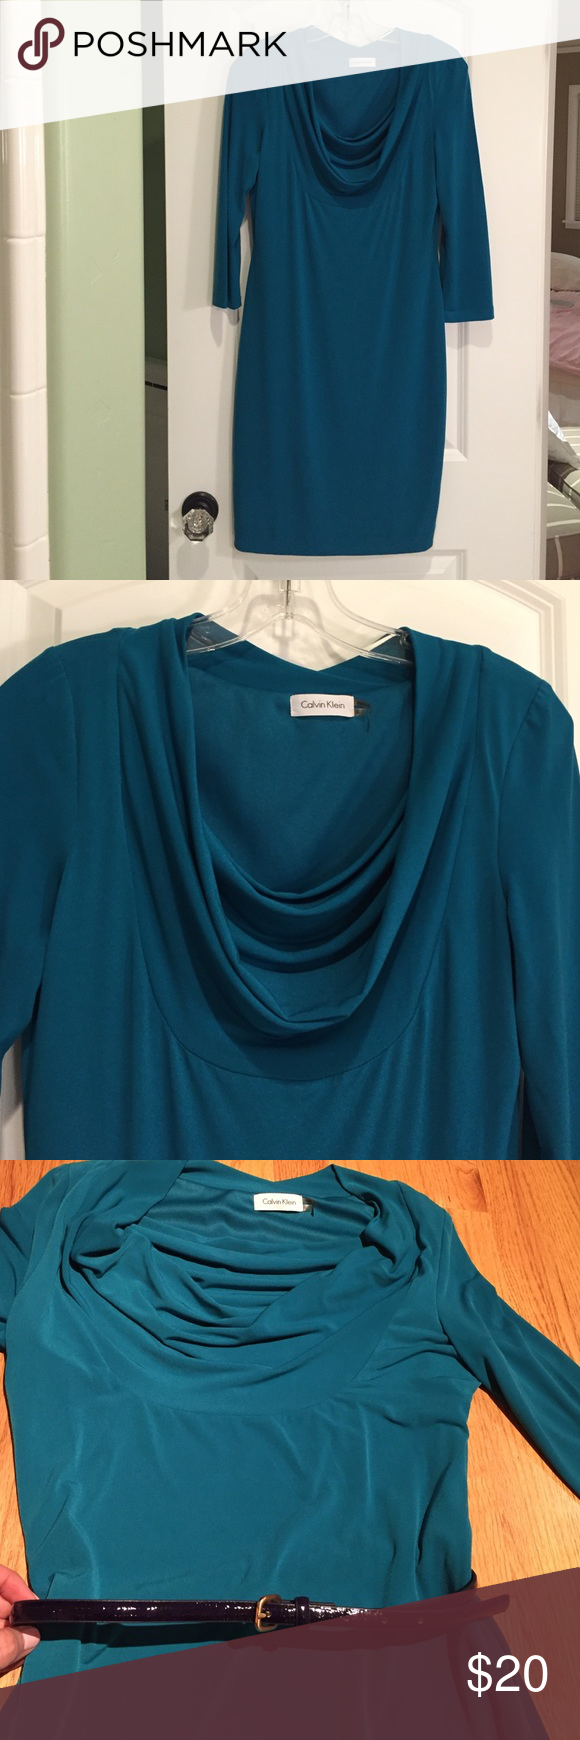 Calvin Klein Dark Teal Stretchy 3/4 Sleeve Dress Lightweight, super comfortable, pull over dress with cowl neck. Can be worn with navy crocodile belt or paired with another color like black or silver. I had the little string belt holder removed at my tailor because I thought it was sitting too high on the dress. Worn once size 6. Calvin Klein Dresses